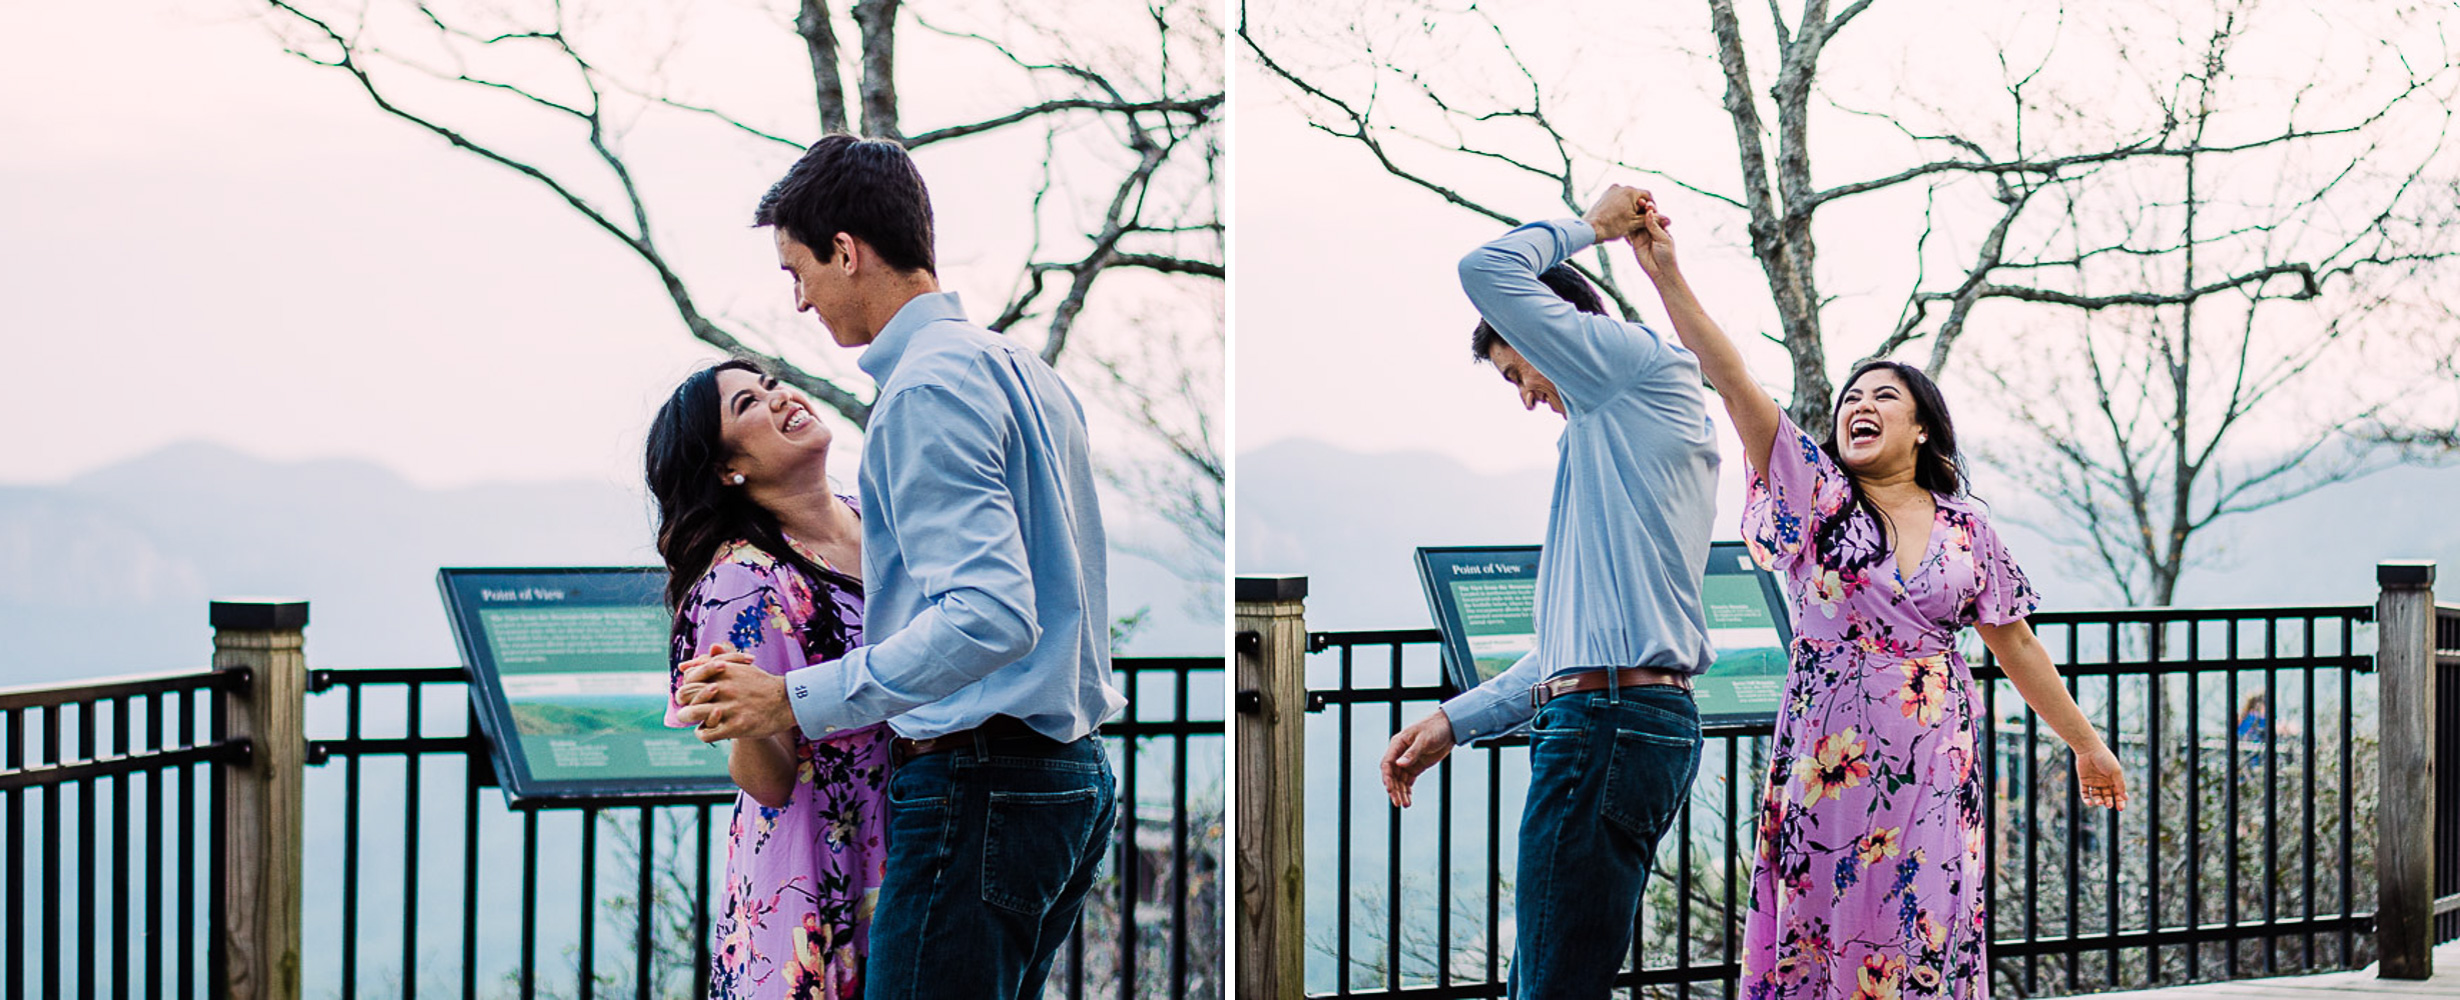 River Engagement Portraits, Engaged, Mountain Engagement, 24.jpg